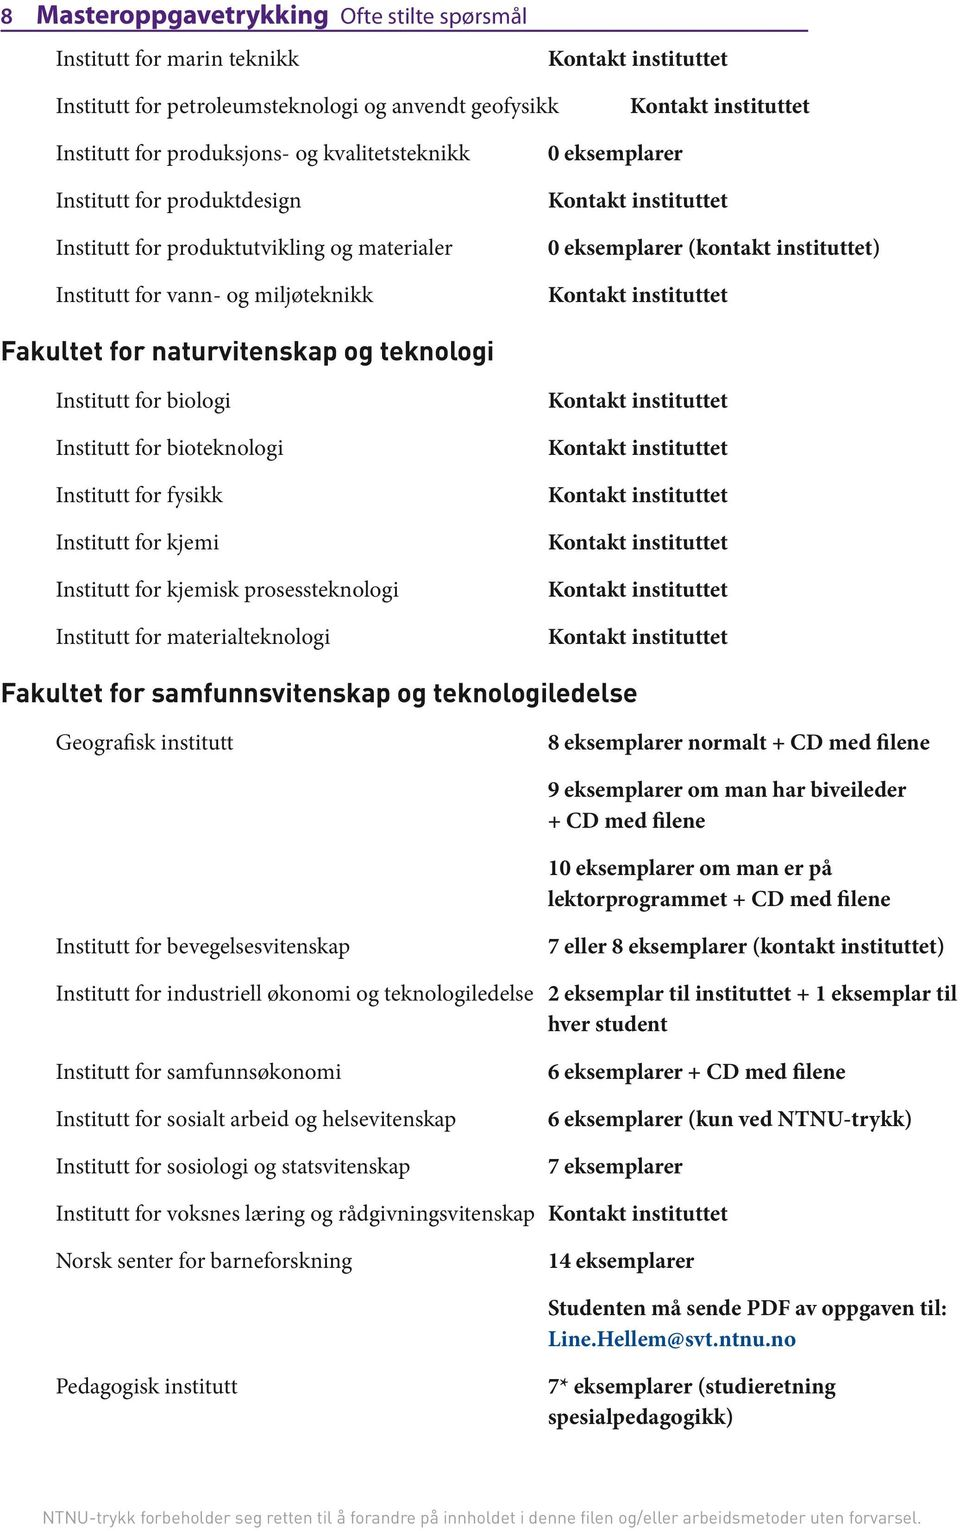 biologi Institutt for bioteknologi Institutt for fysikk Institutt for kjemi Institutt for kjemisk prosessteknologi Institutt for materialteknologi Fakultet for samfunnsvitenskap og teknologiledelse